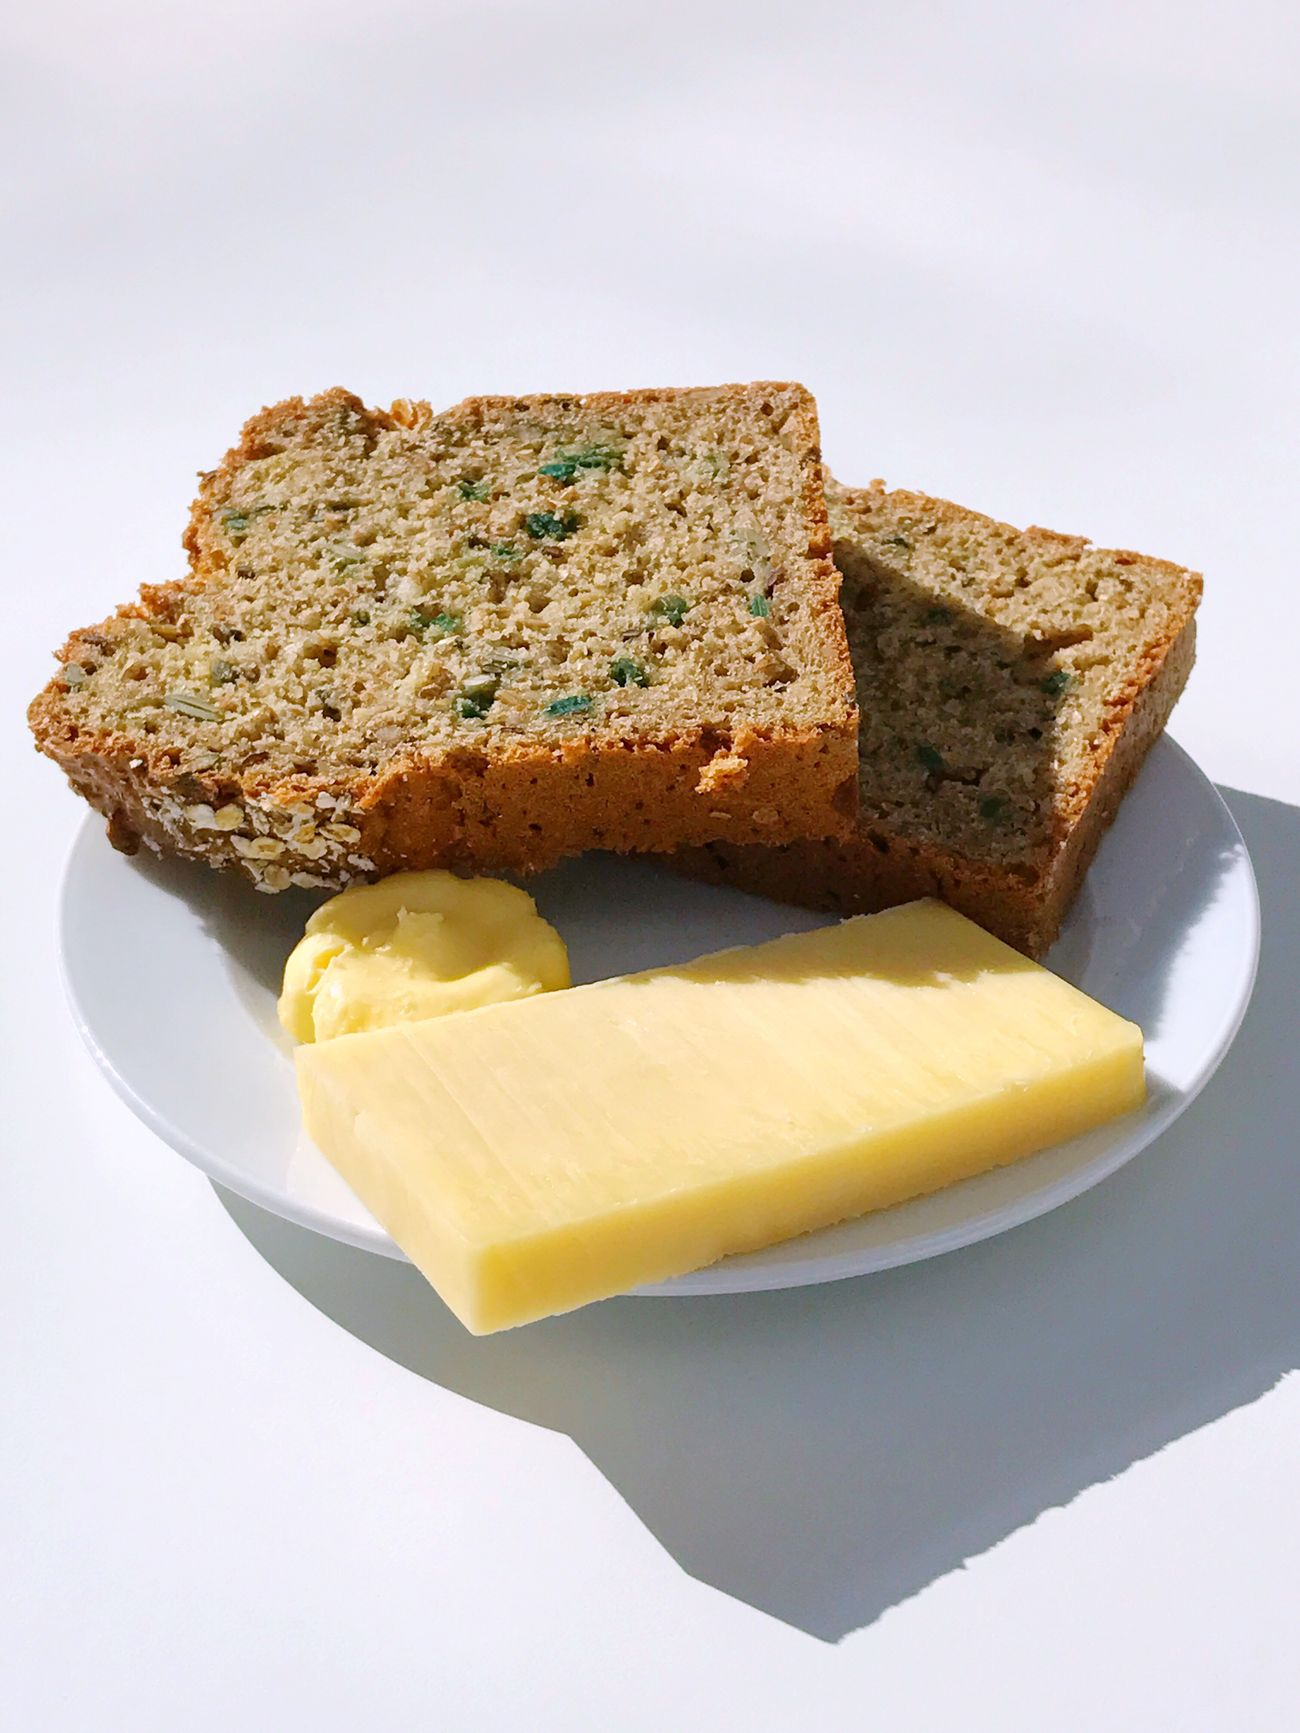 Bread Food SLICE Food And Drink White Background No People Breakfast Toasted Bread Plate Freshness Healthy Eating Studio Shot Sliced Bread Close-up Indoors  Ready-to-eat Brown Bread Toasted Day Cheese Butter Dairy Dairy Product